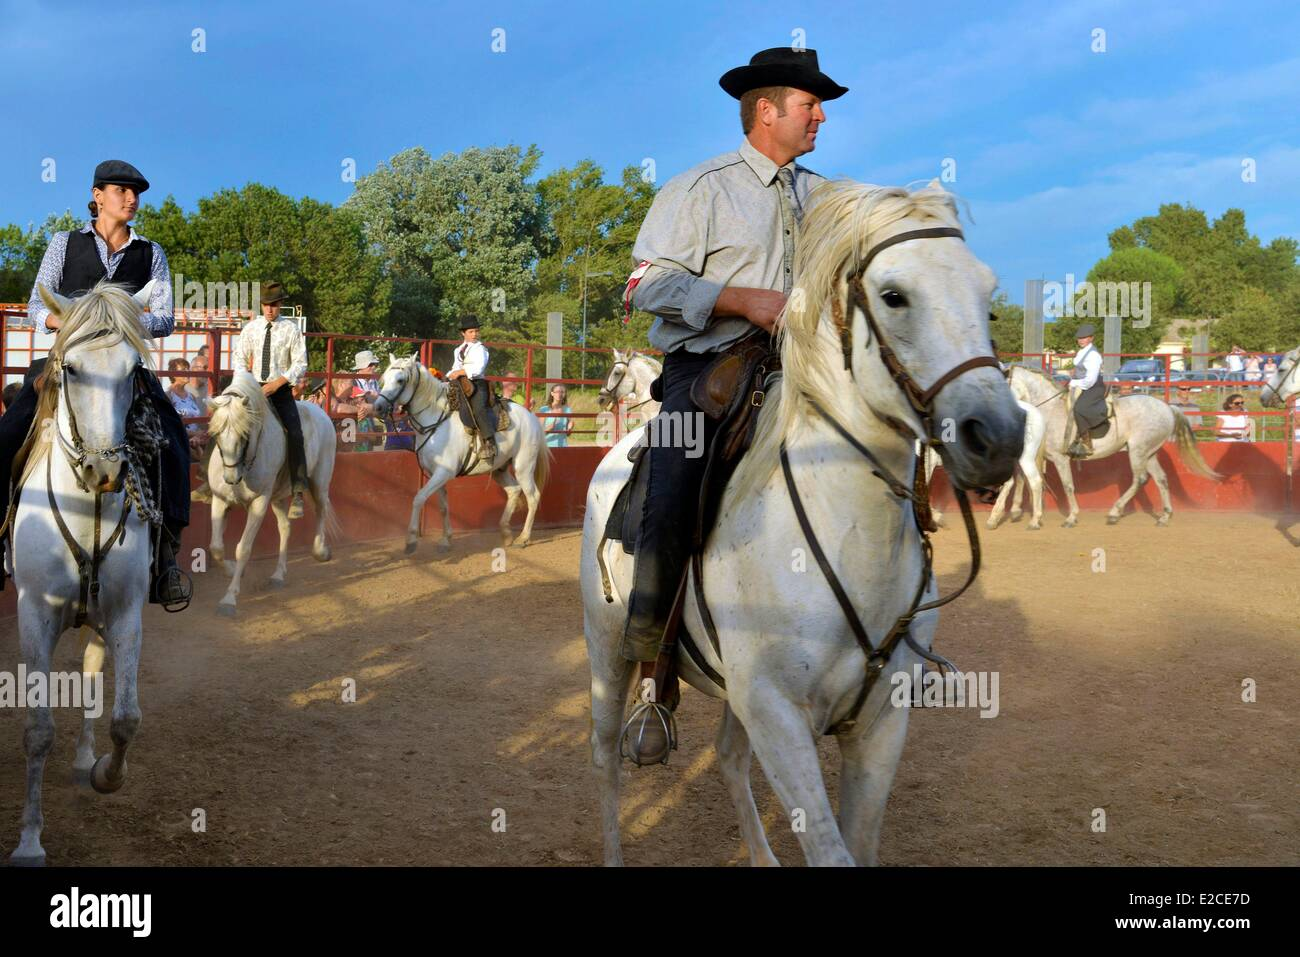 France, Herault, Serignan, annual feria, equestrian show of the Herd of bulls from the Manade Marge - Stock Image